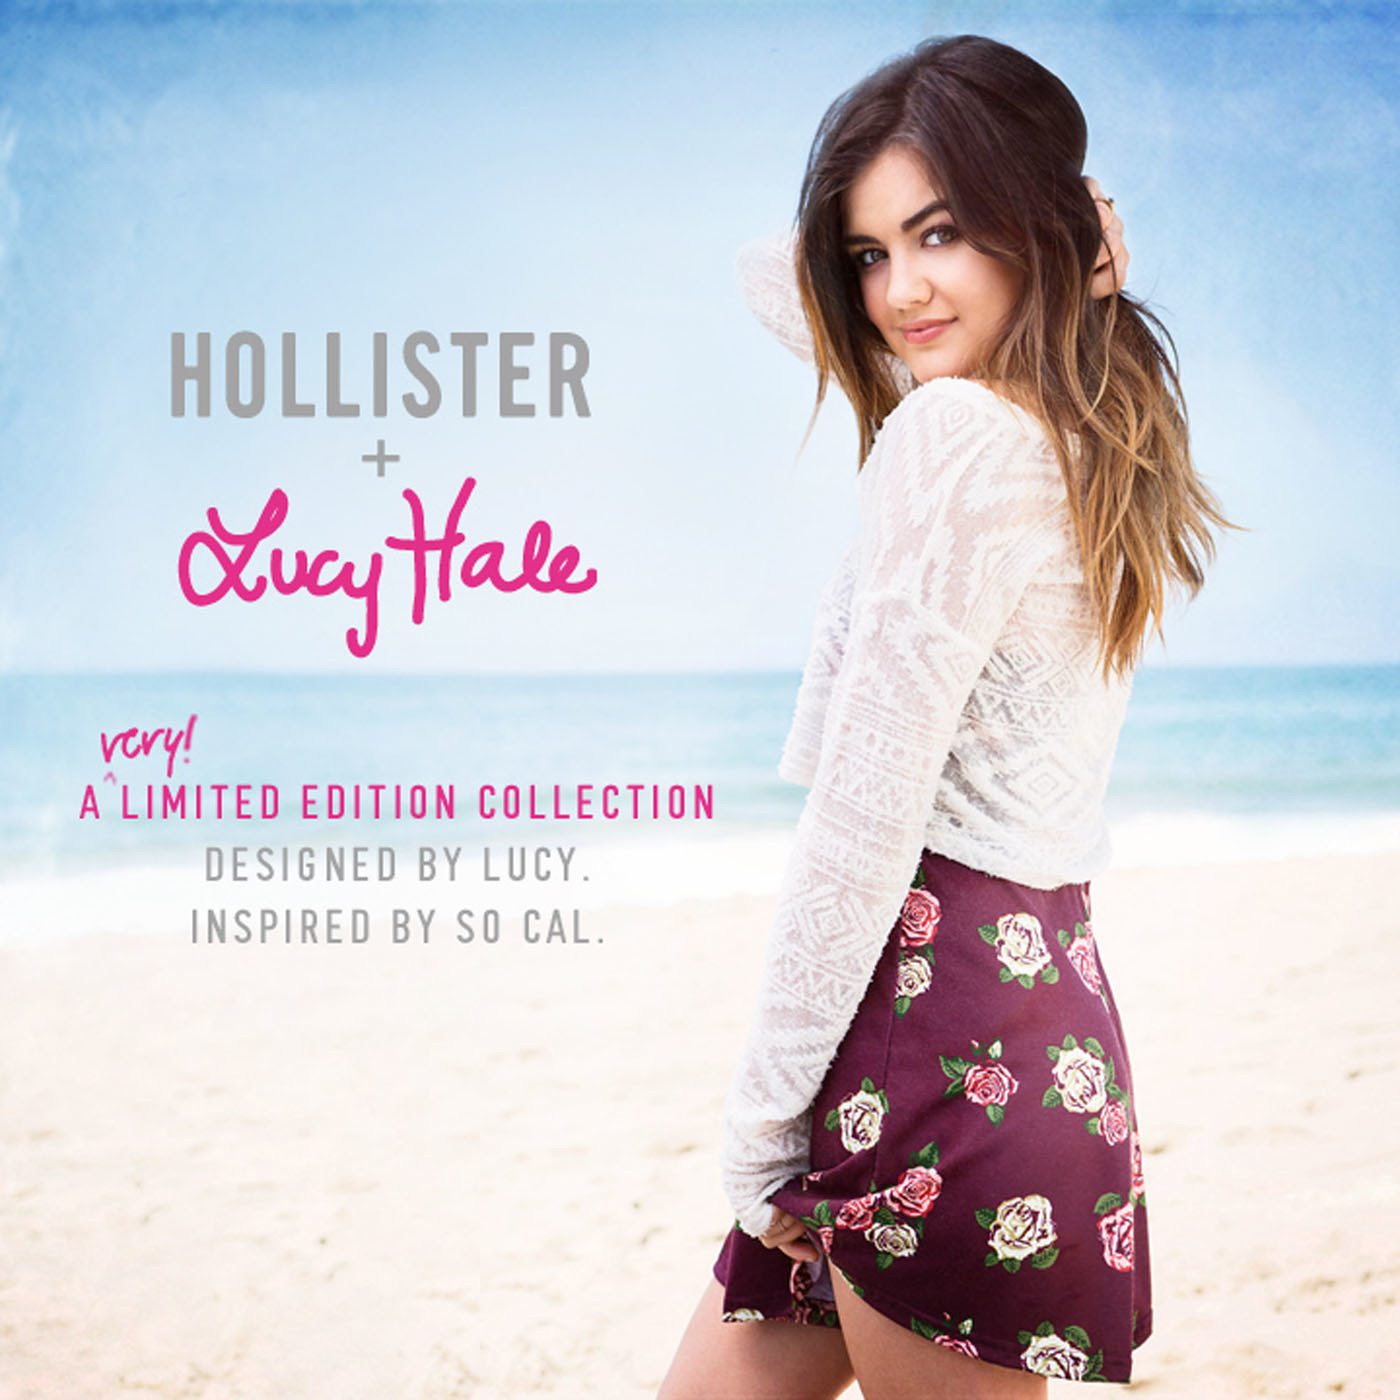 Lucy Hale Debuts First Collection for Hollister